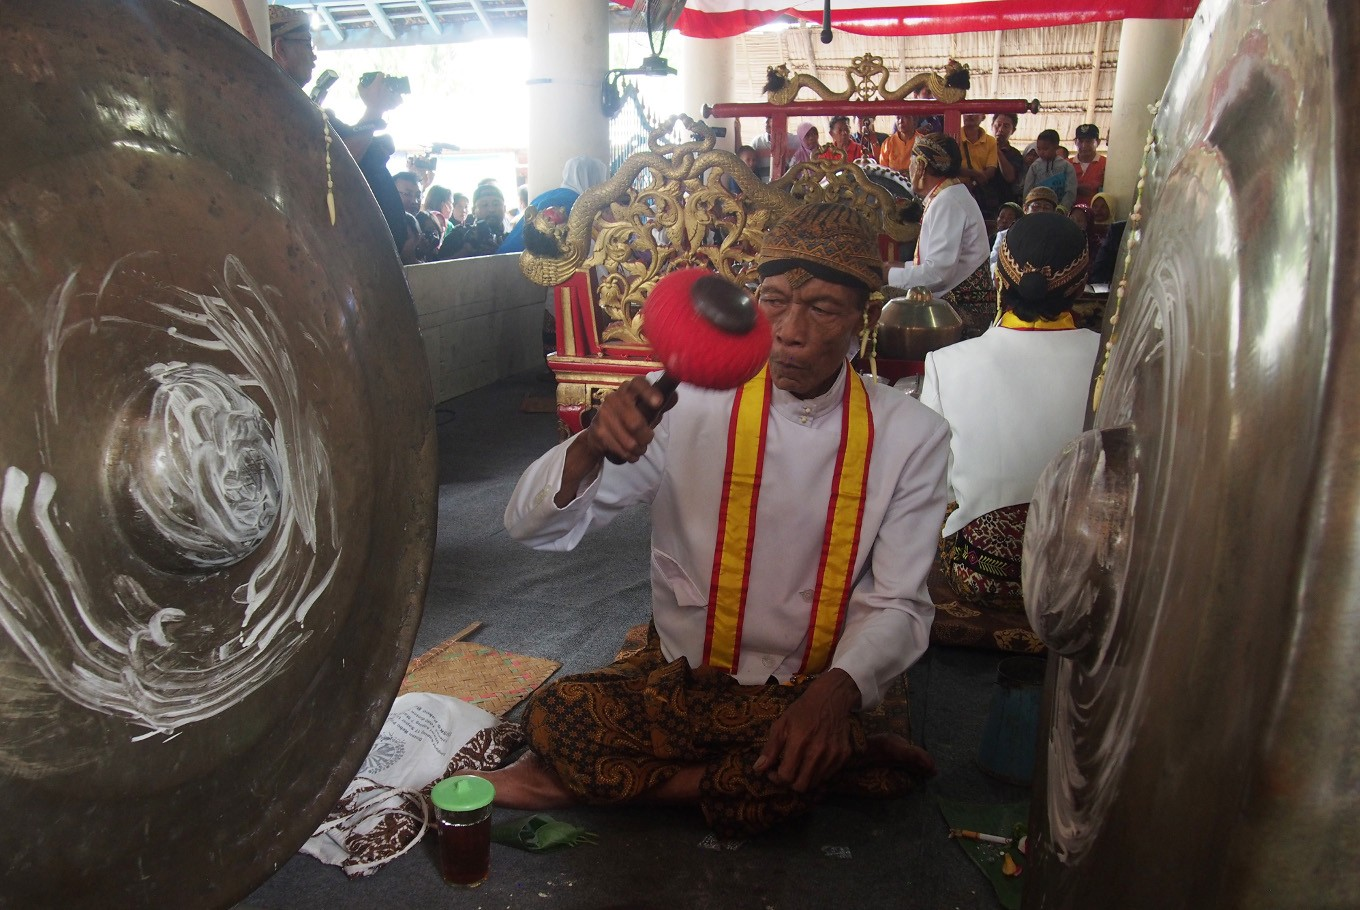 A musician plays the Kyai Guntur Madu gamelan as part of a ceremony that commemorates the birthday of the Prophet Muhammad at the Grand Mosque, Surakarta in Central Java on Friday.